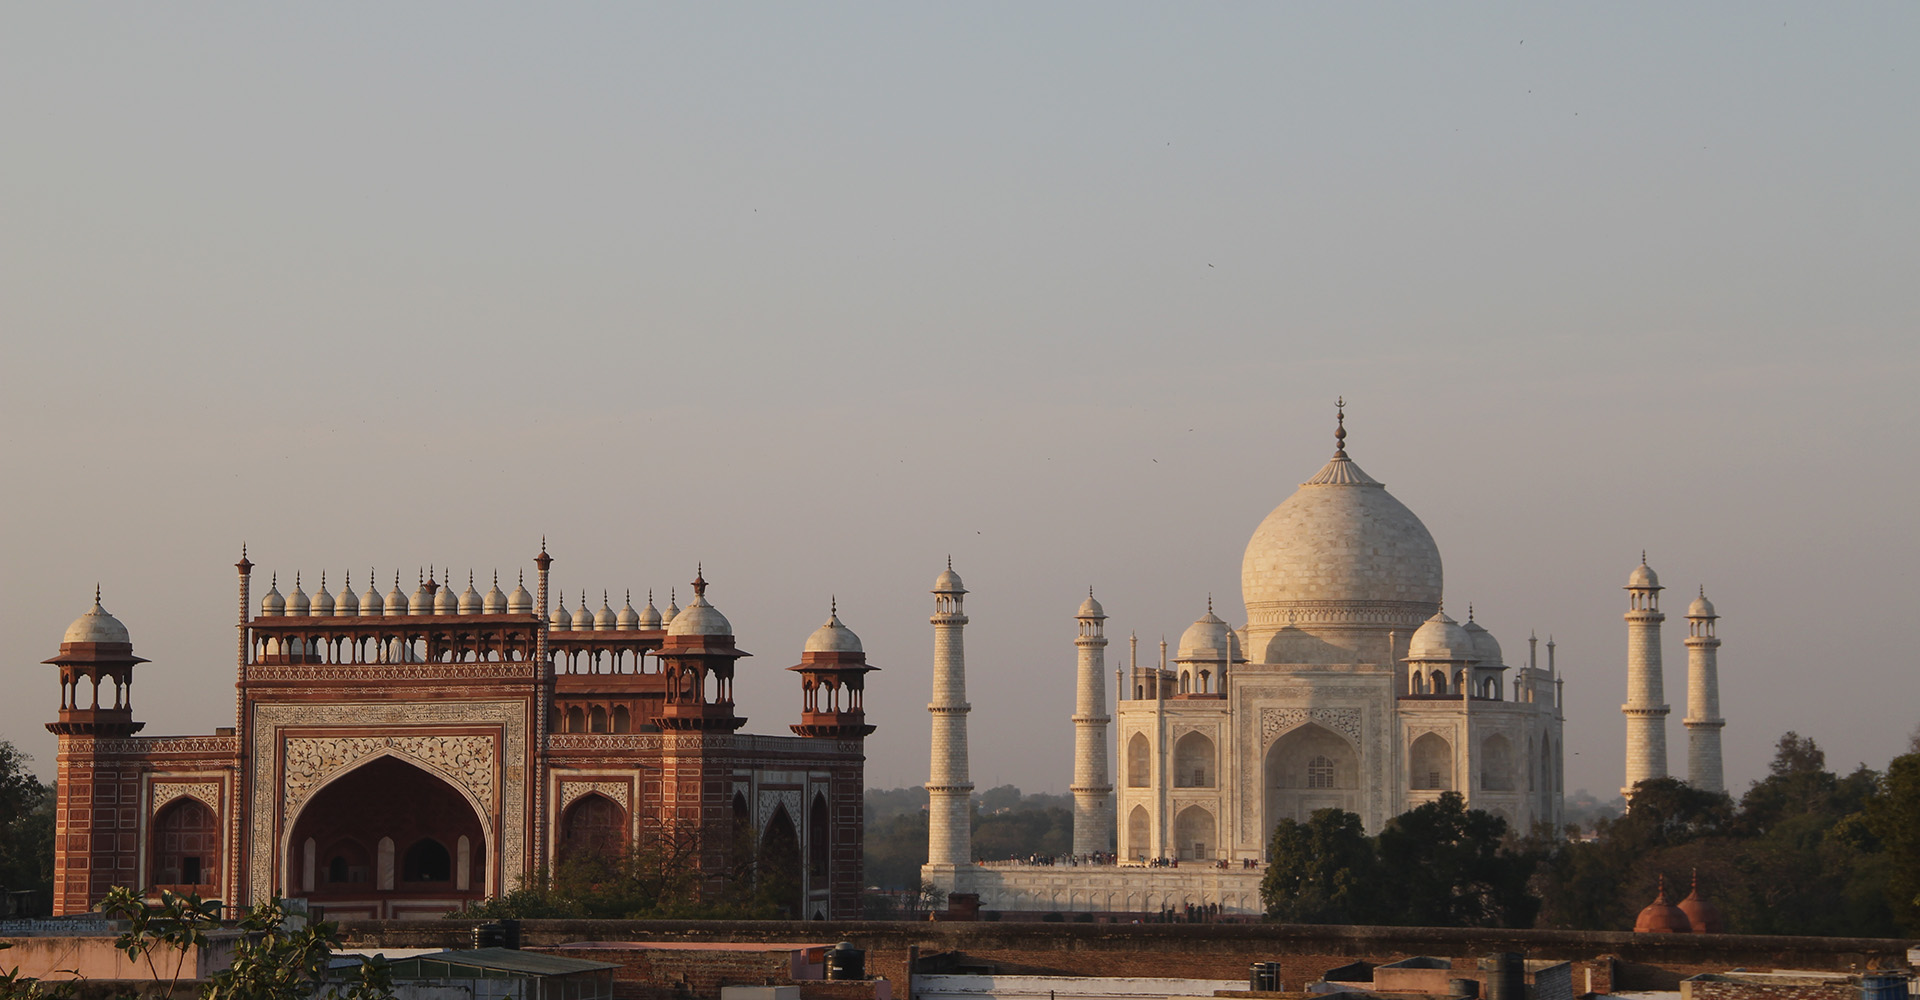 Finest Architectural Structures of India